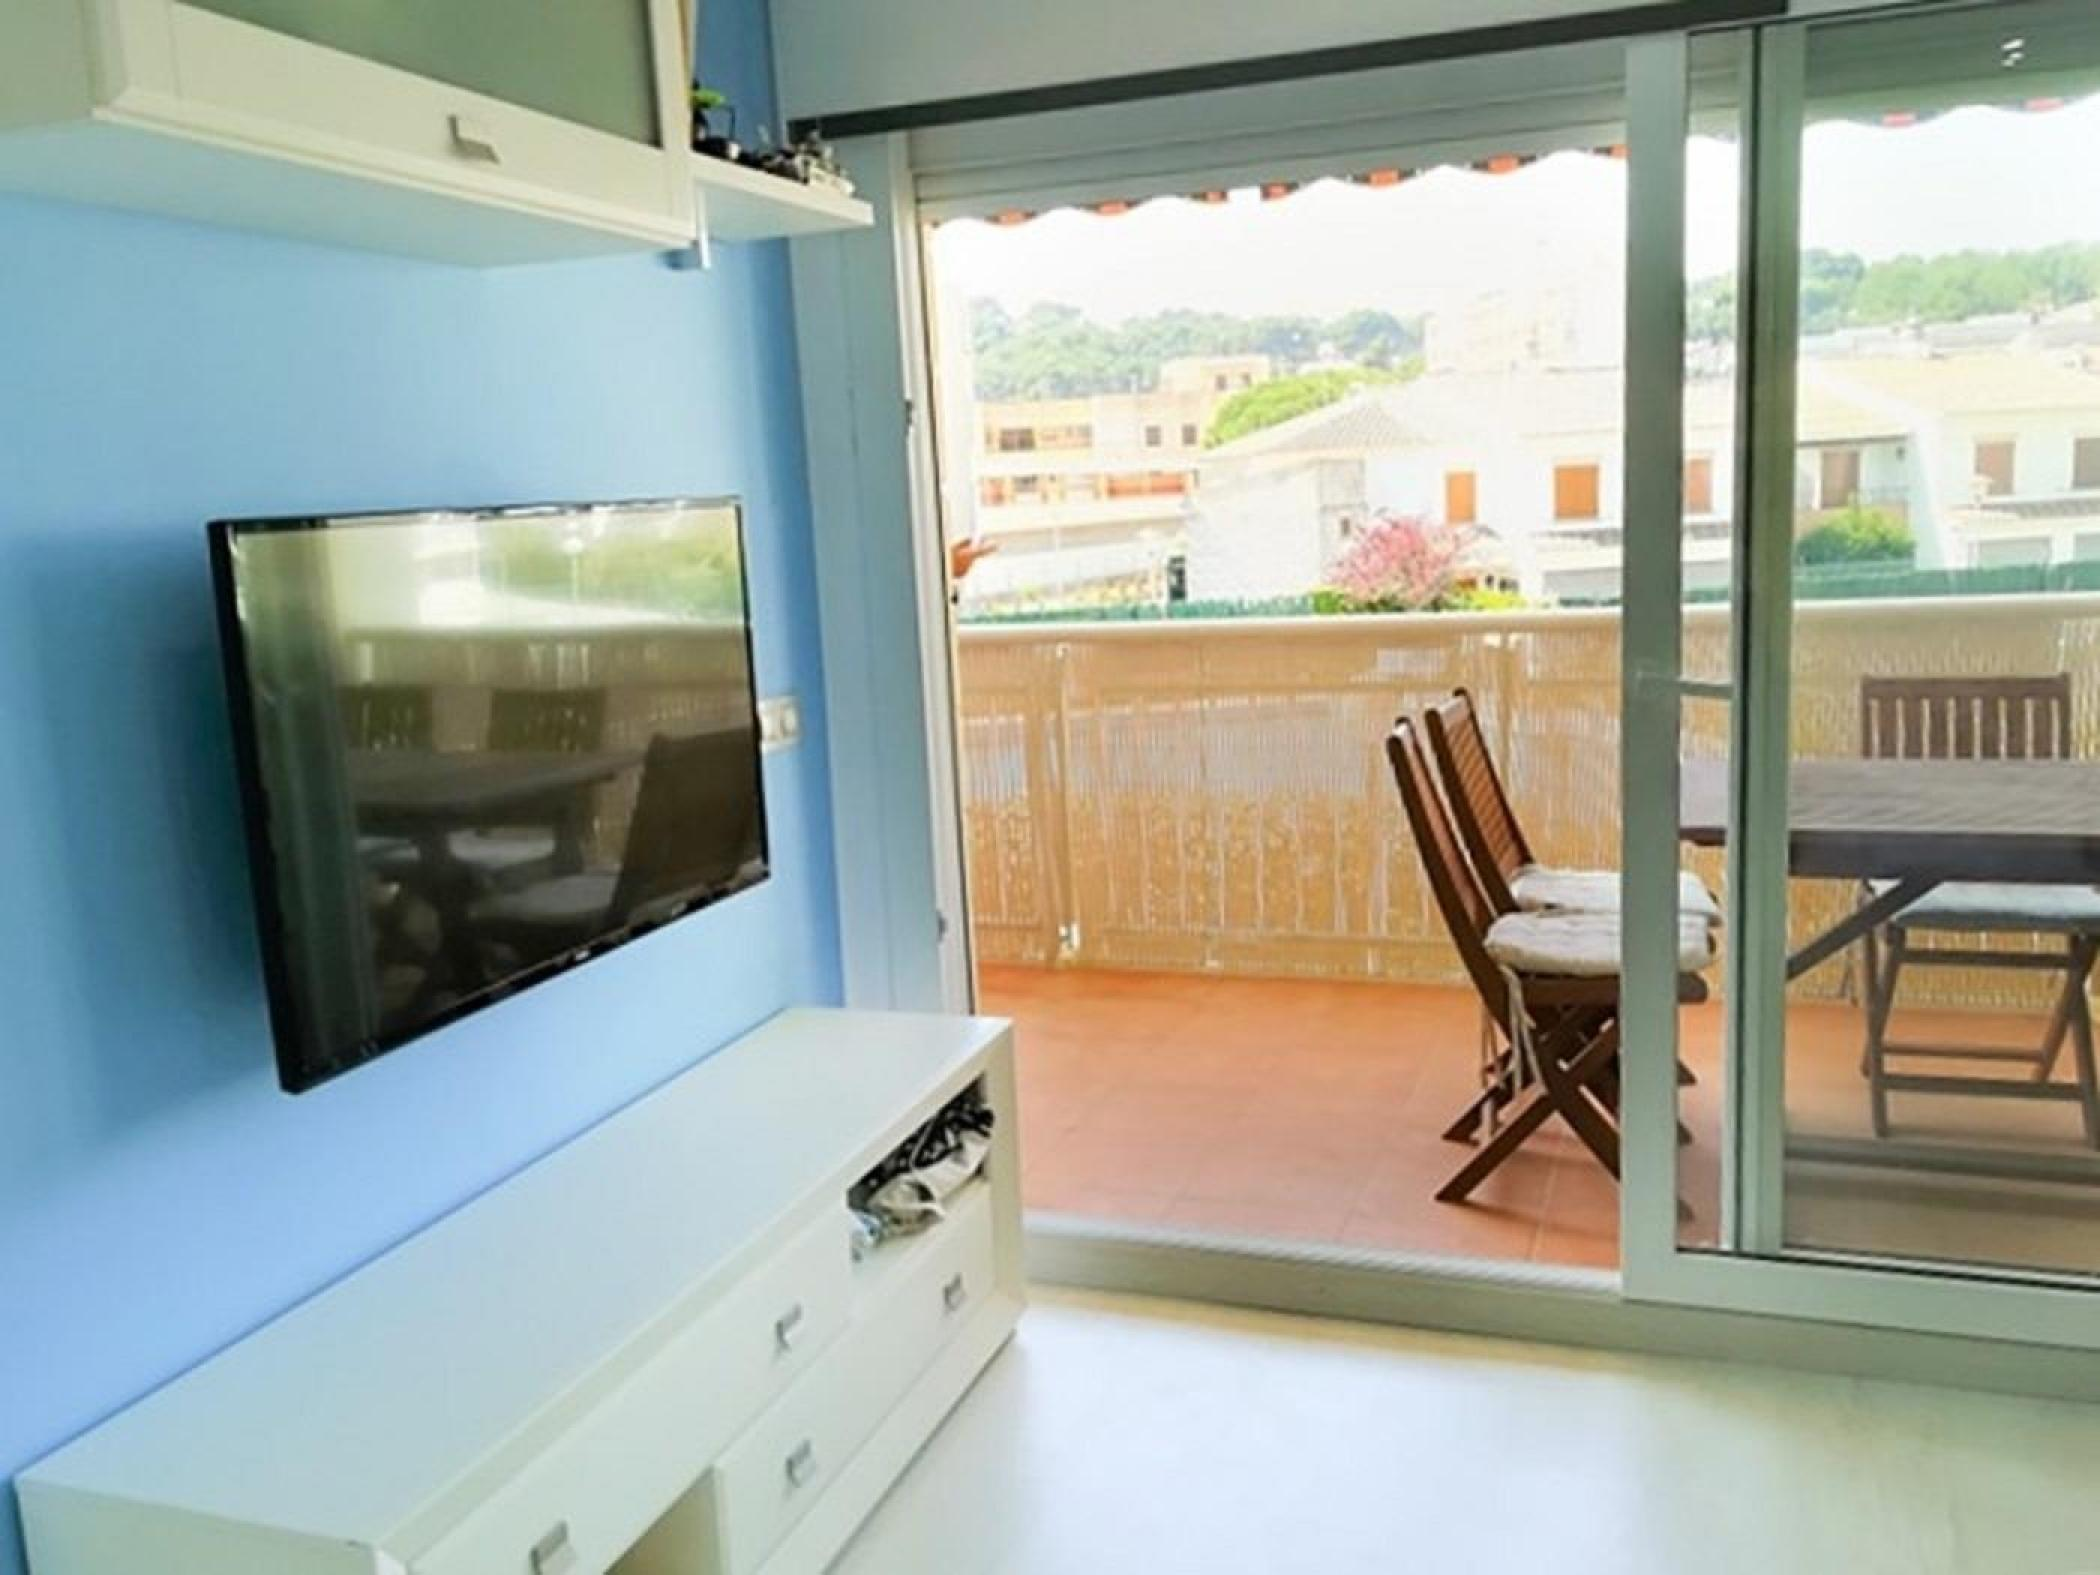 Rent Apartment with Swimming pool in Sant Antoni de Calonge - Complexe Canigó amb piscina i 1º linea de mar - 5